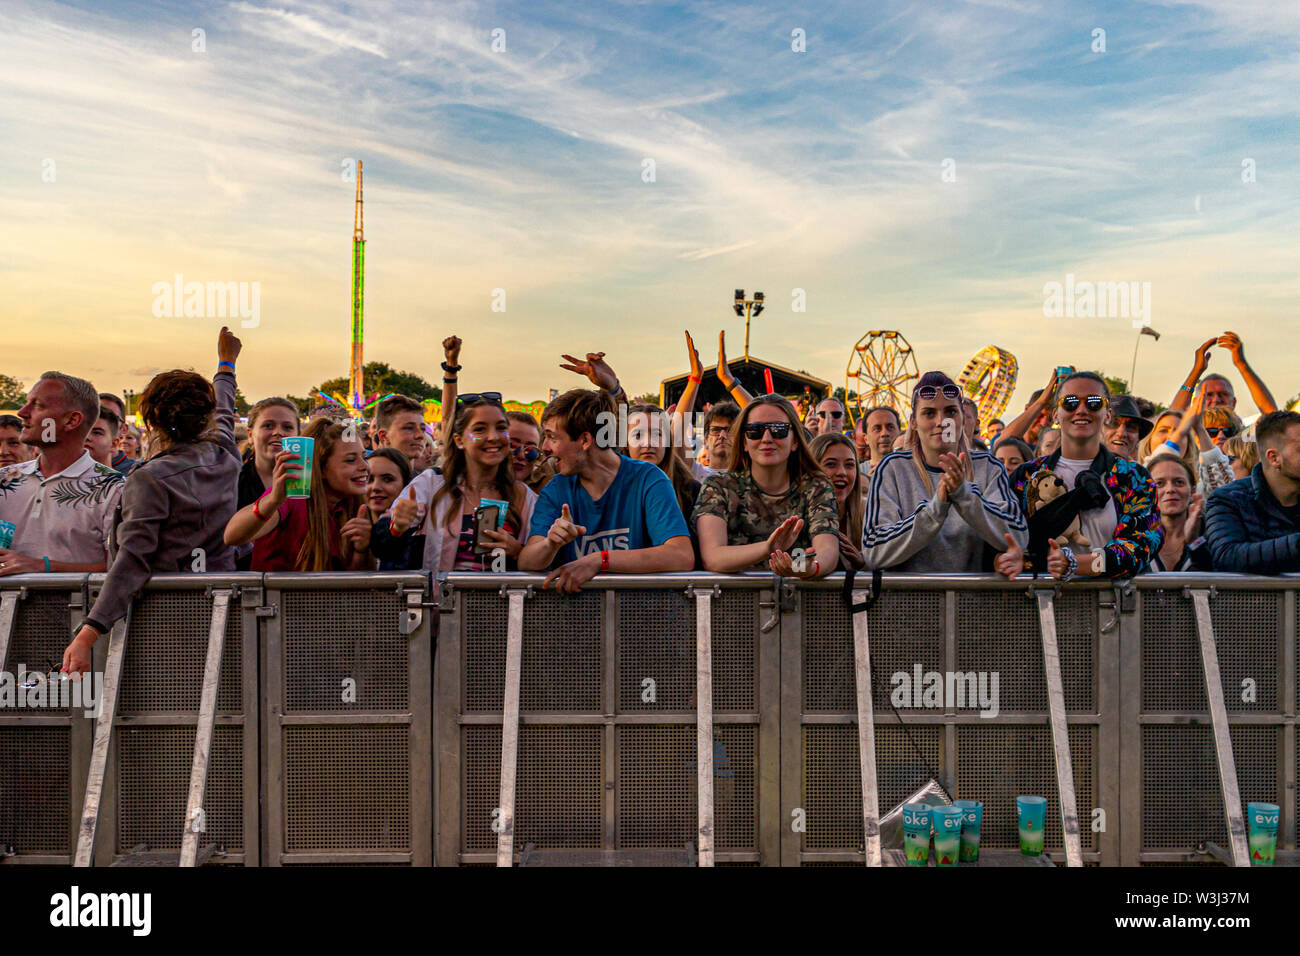 Crowd of people Brentwood Festival presents Evoke, Sunday 14th July 2019 - Stock Image